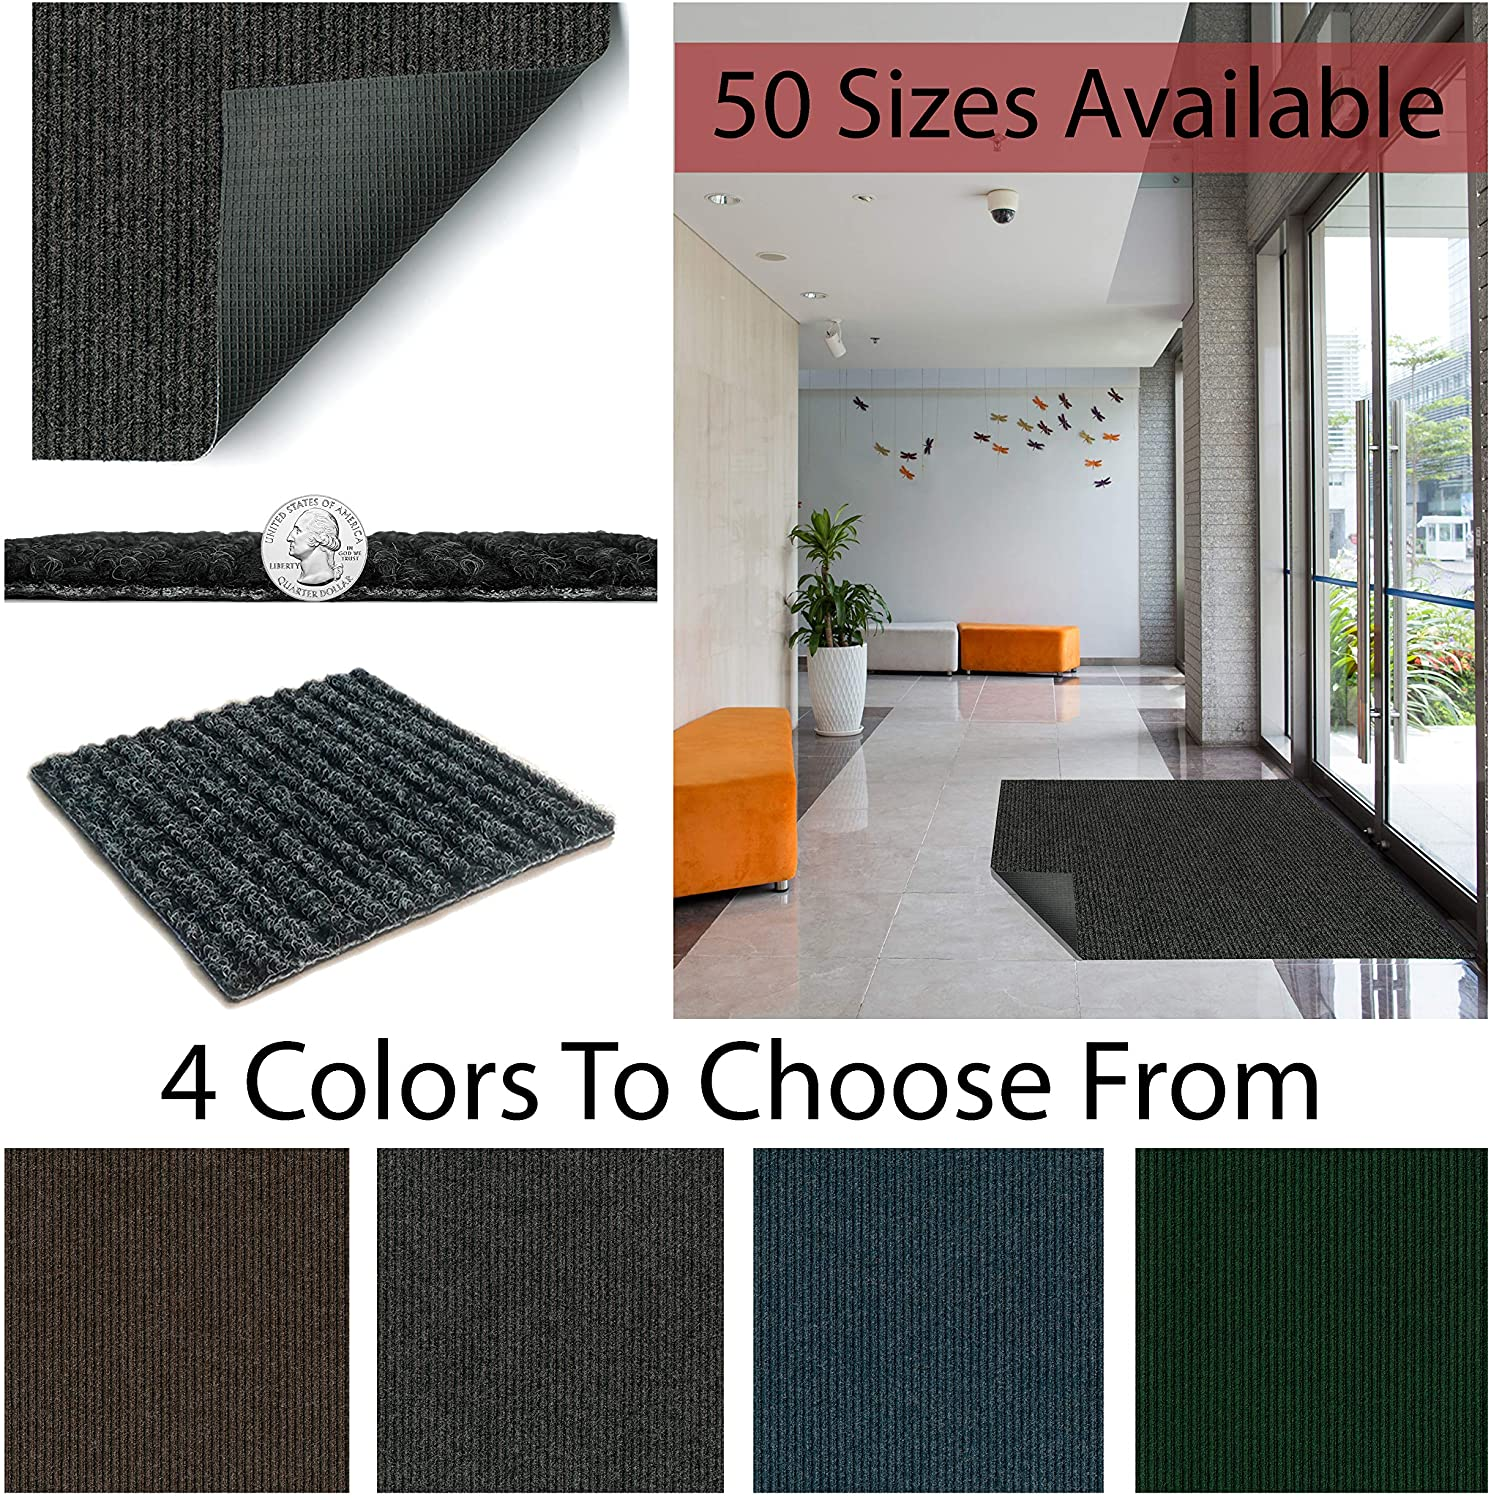 4 x 8 heavy duty durable all weather indoor outdoor non slip entrance mat rugs and runners for office business building home garage front color